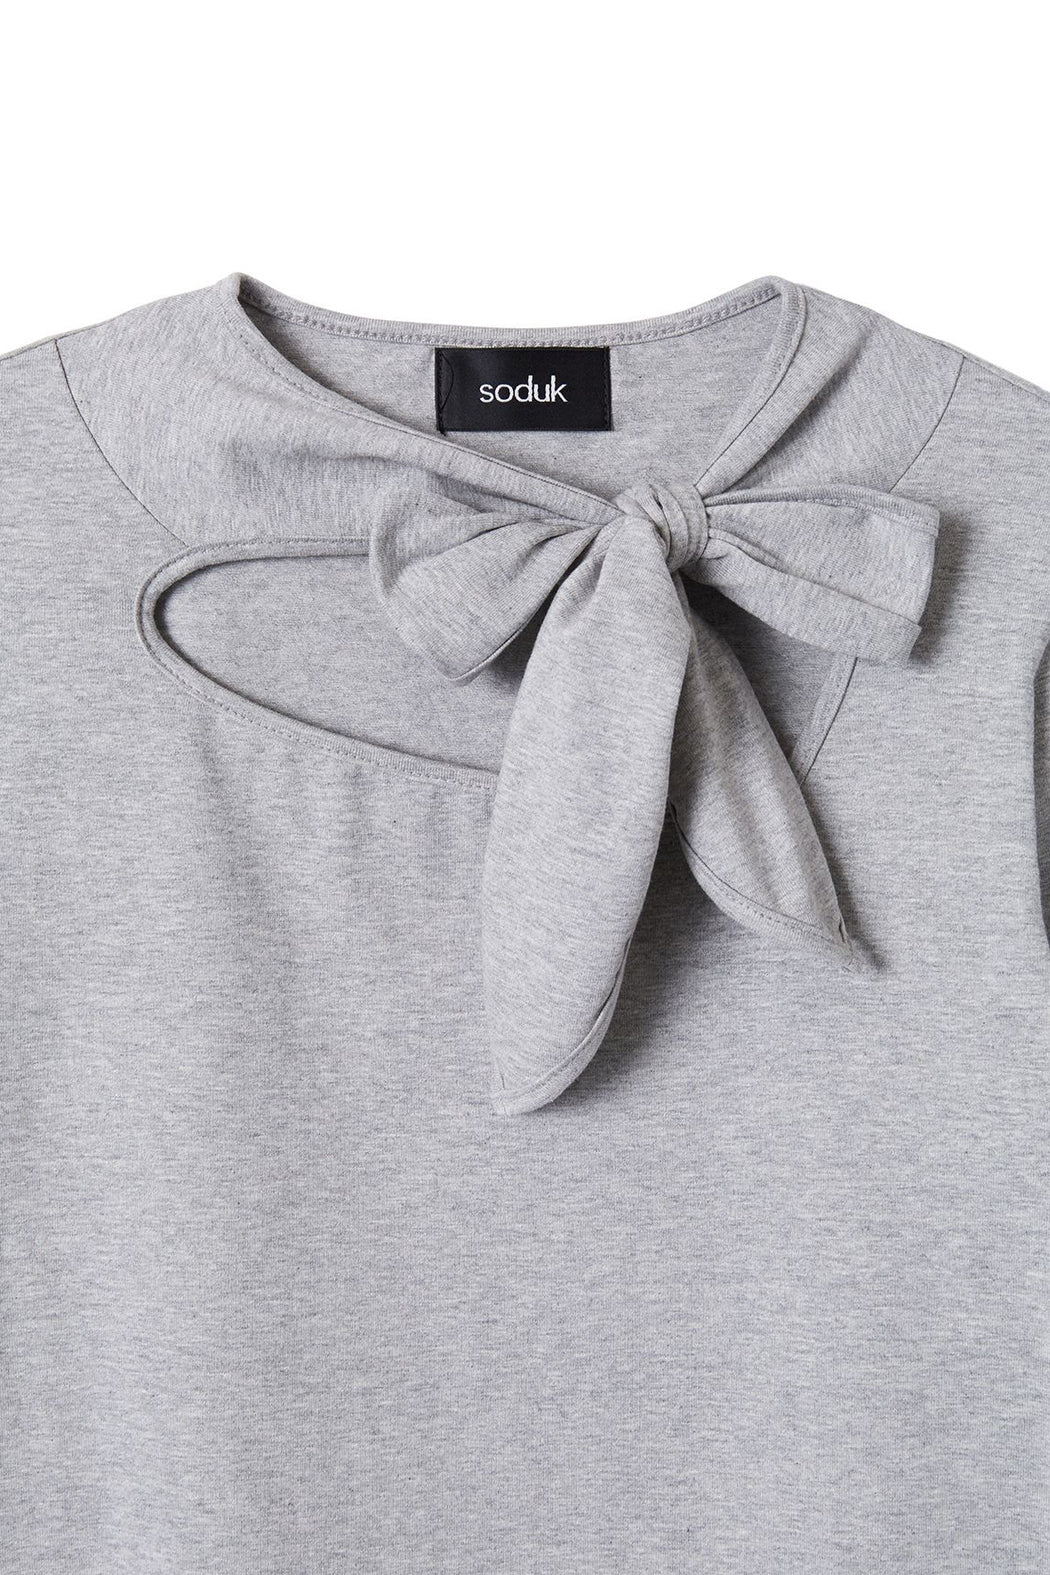 Ribbon Tie Long T-shirt - Grey